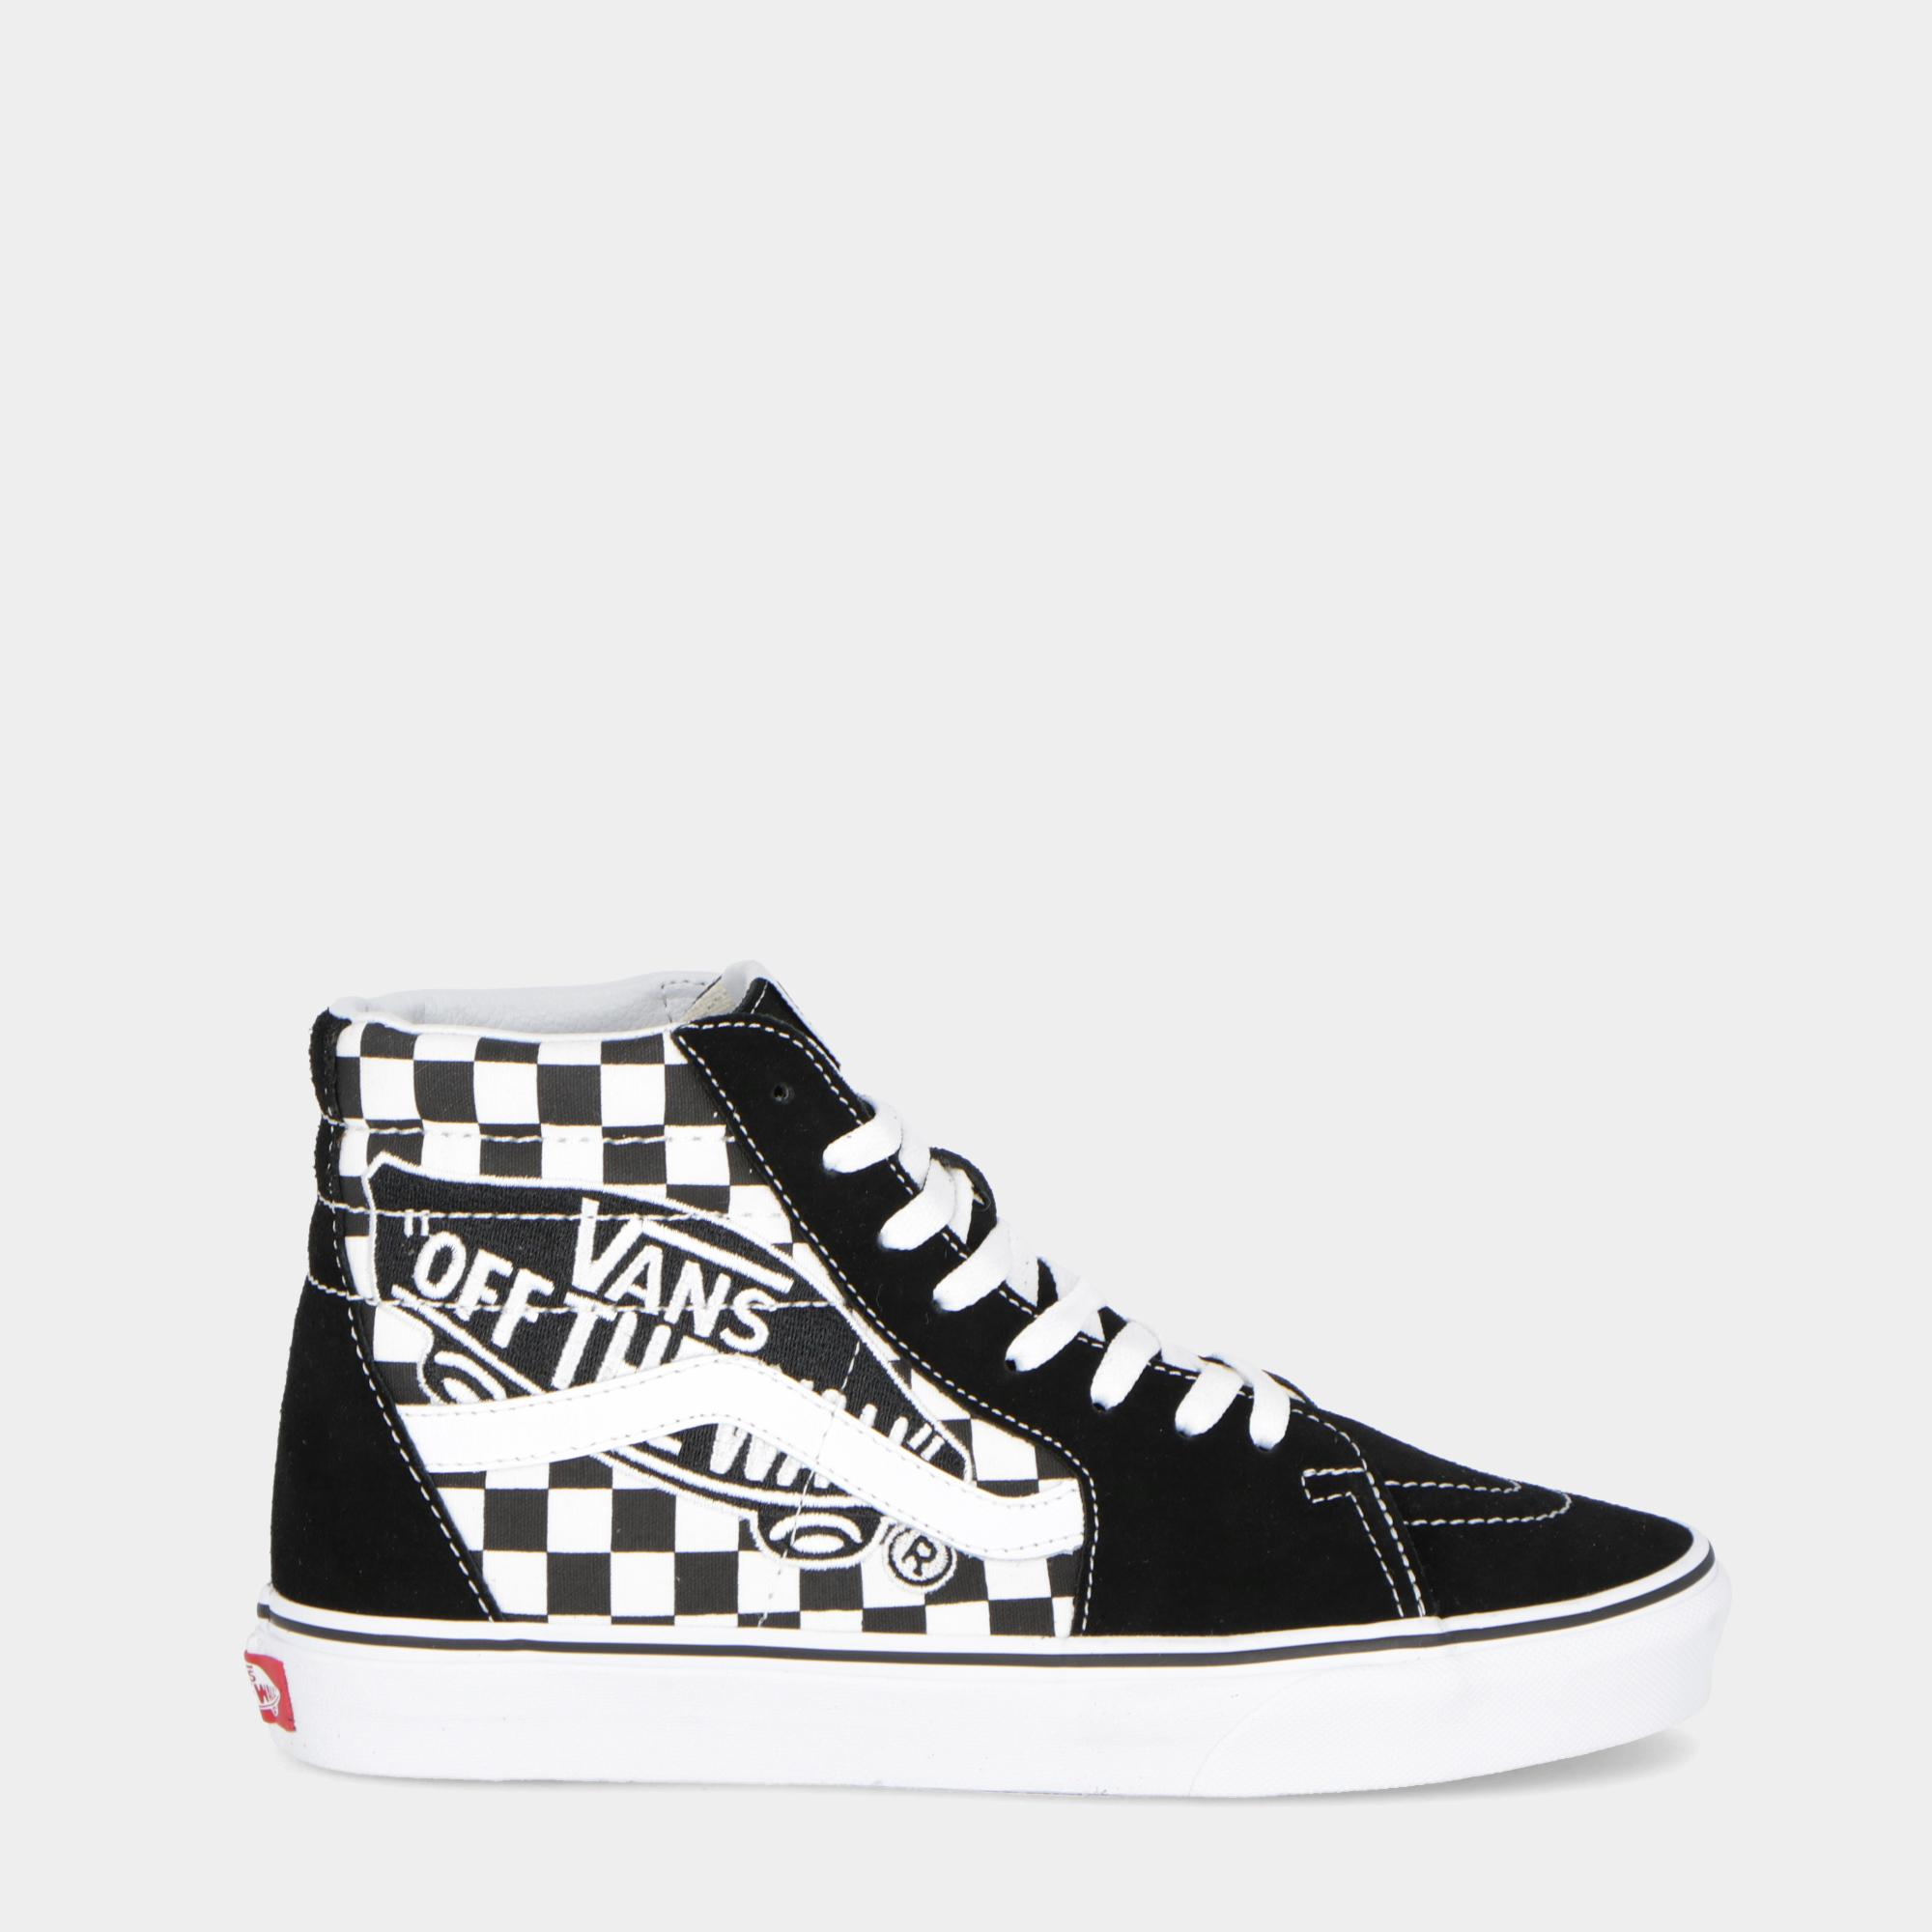 72eb9a684b Vans Sk8-hi Black True White